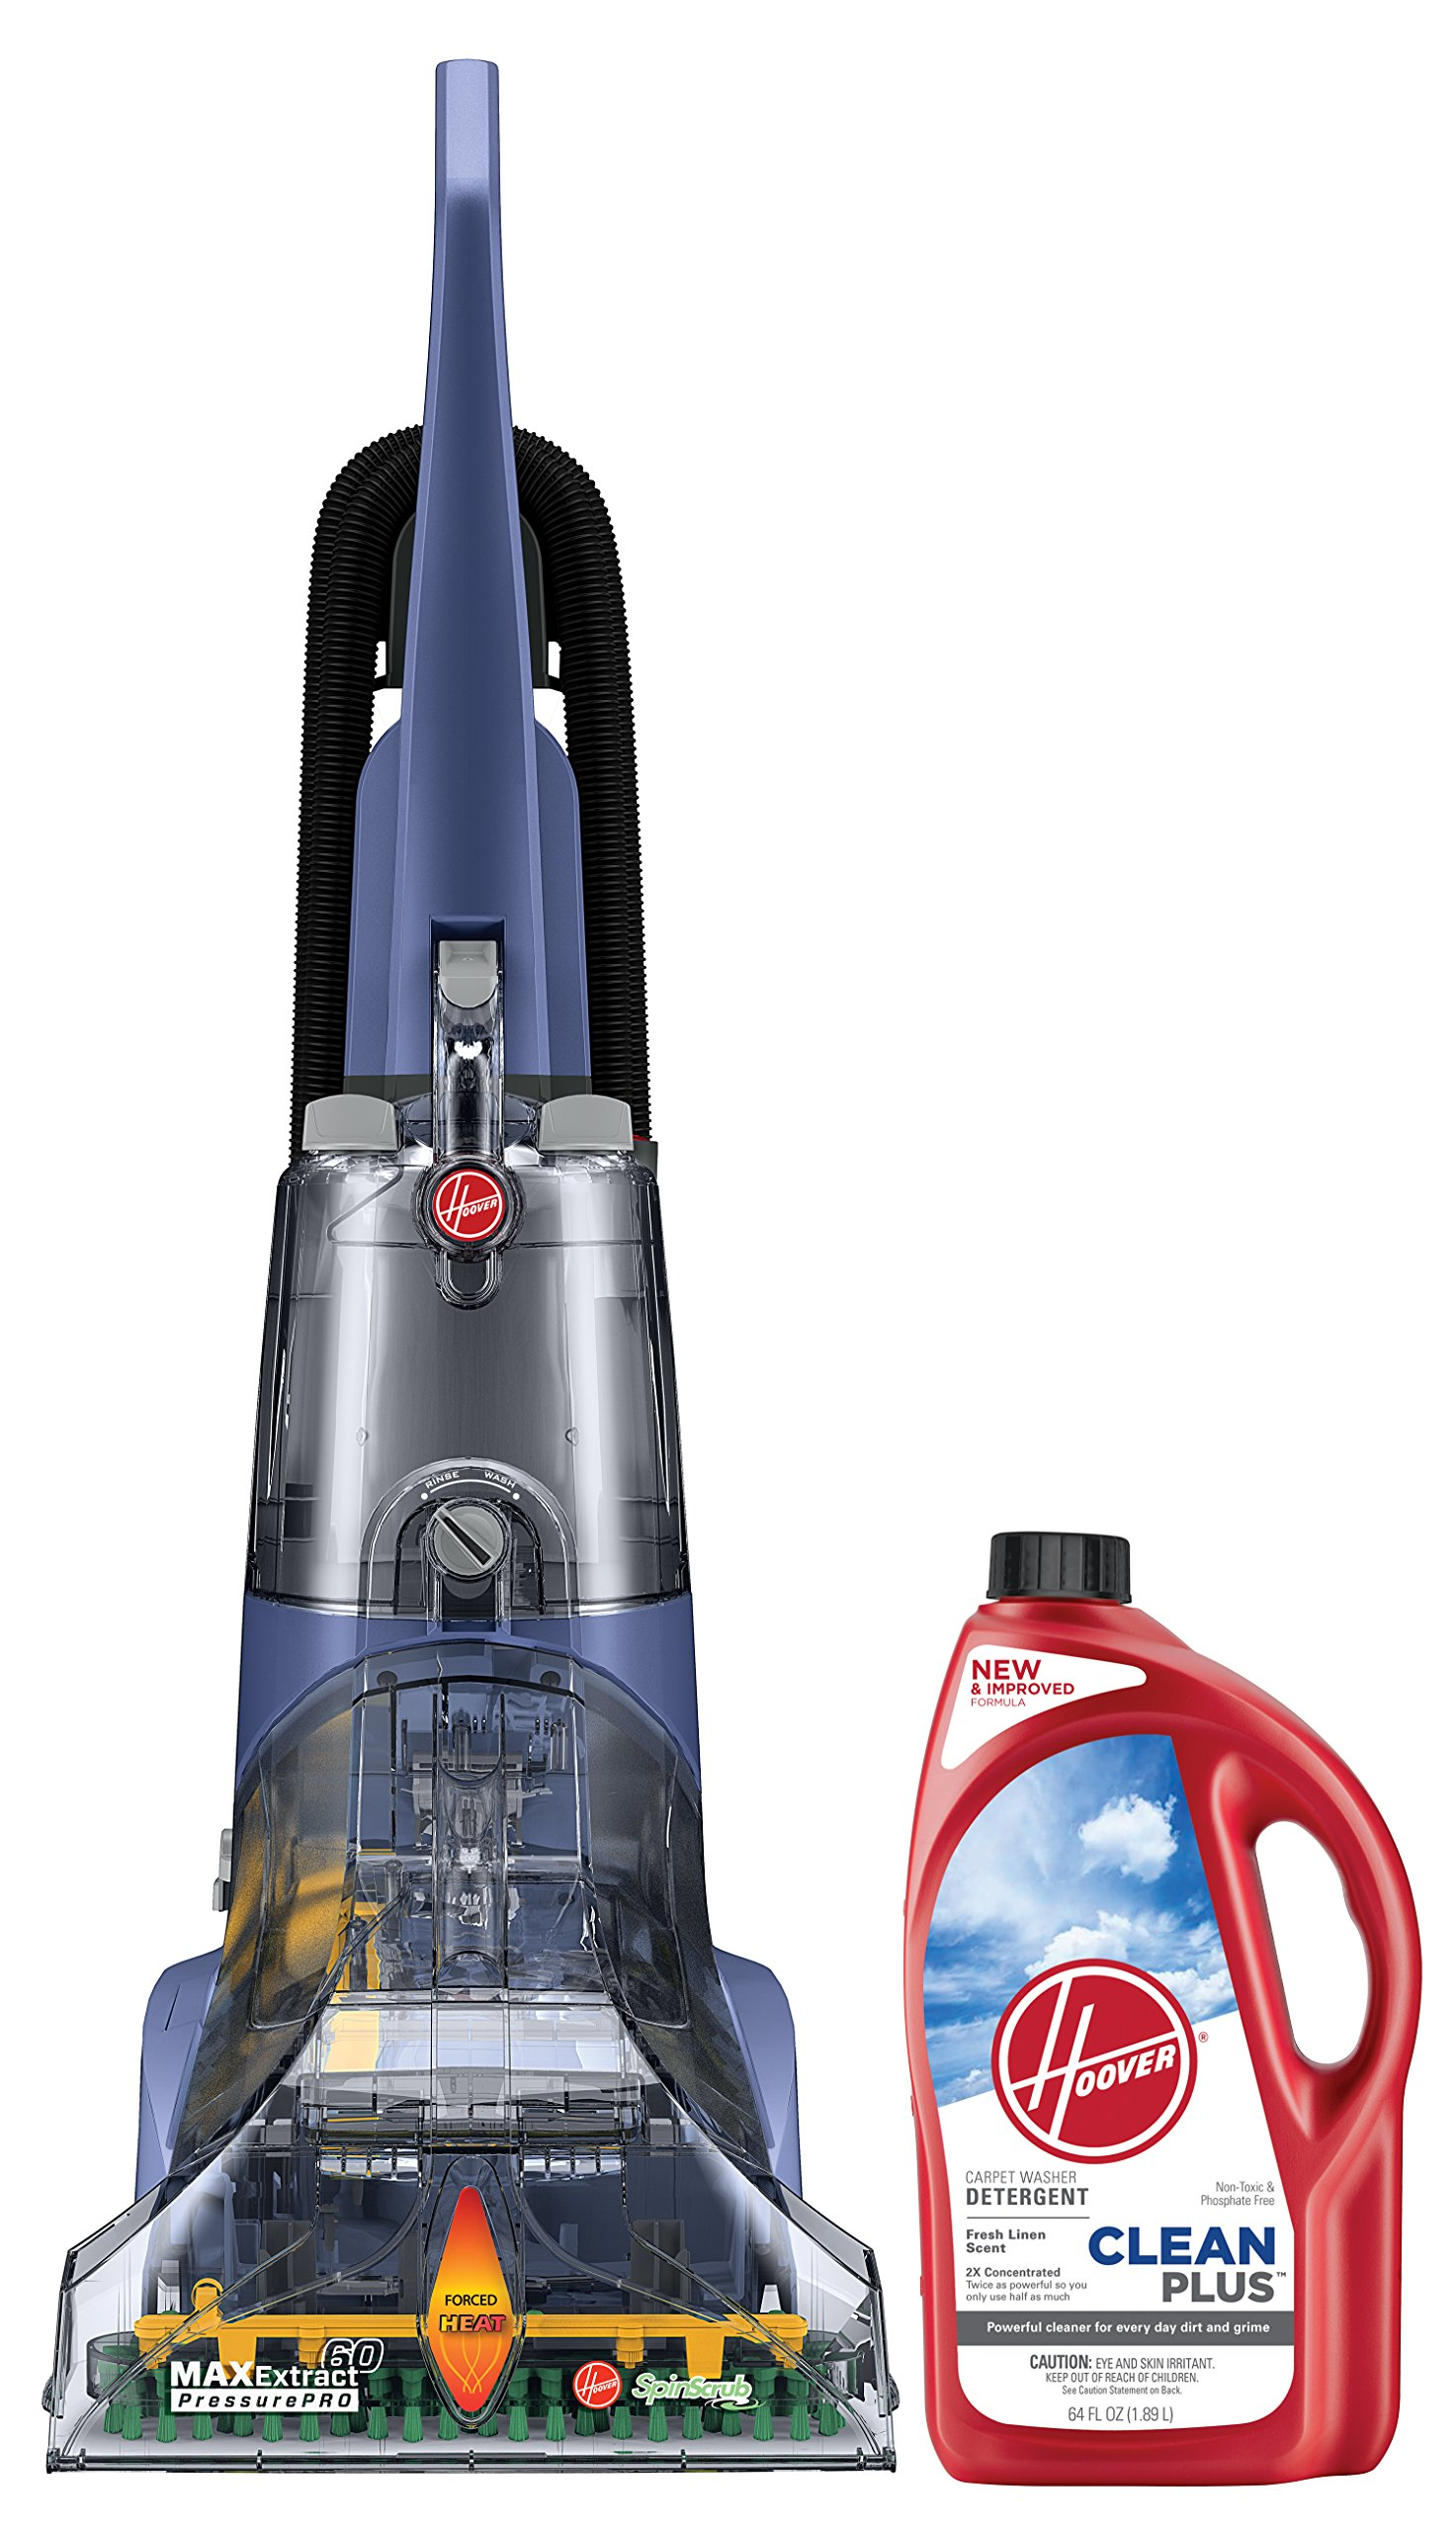 Hoover Max Extract 60 Pressure Pro Carpet Deep Cleaner, FH50220 and Hoover CLEANPLUS 2X 64oz Carpet Cleaner and Deodorizer, AH30330 Bundle